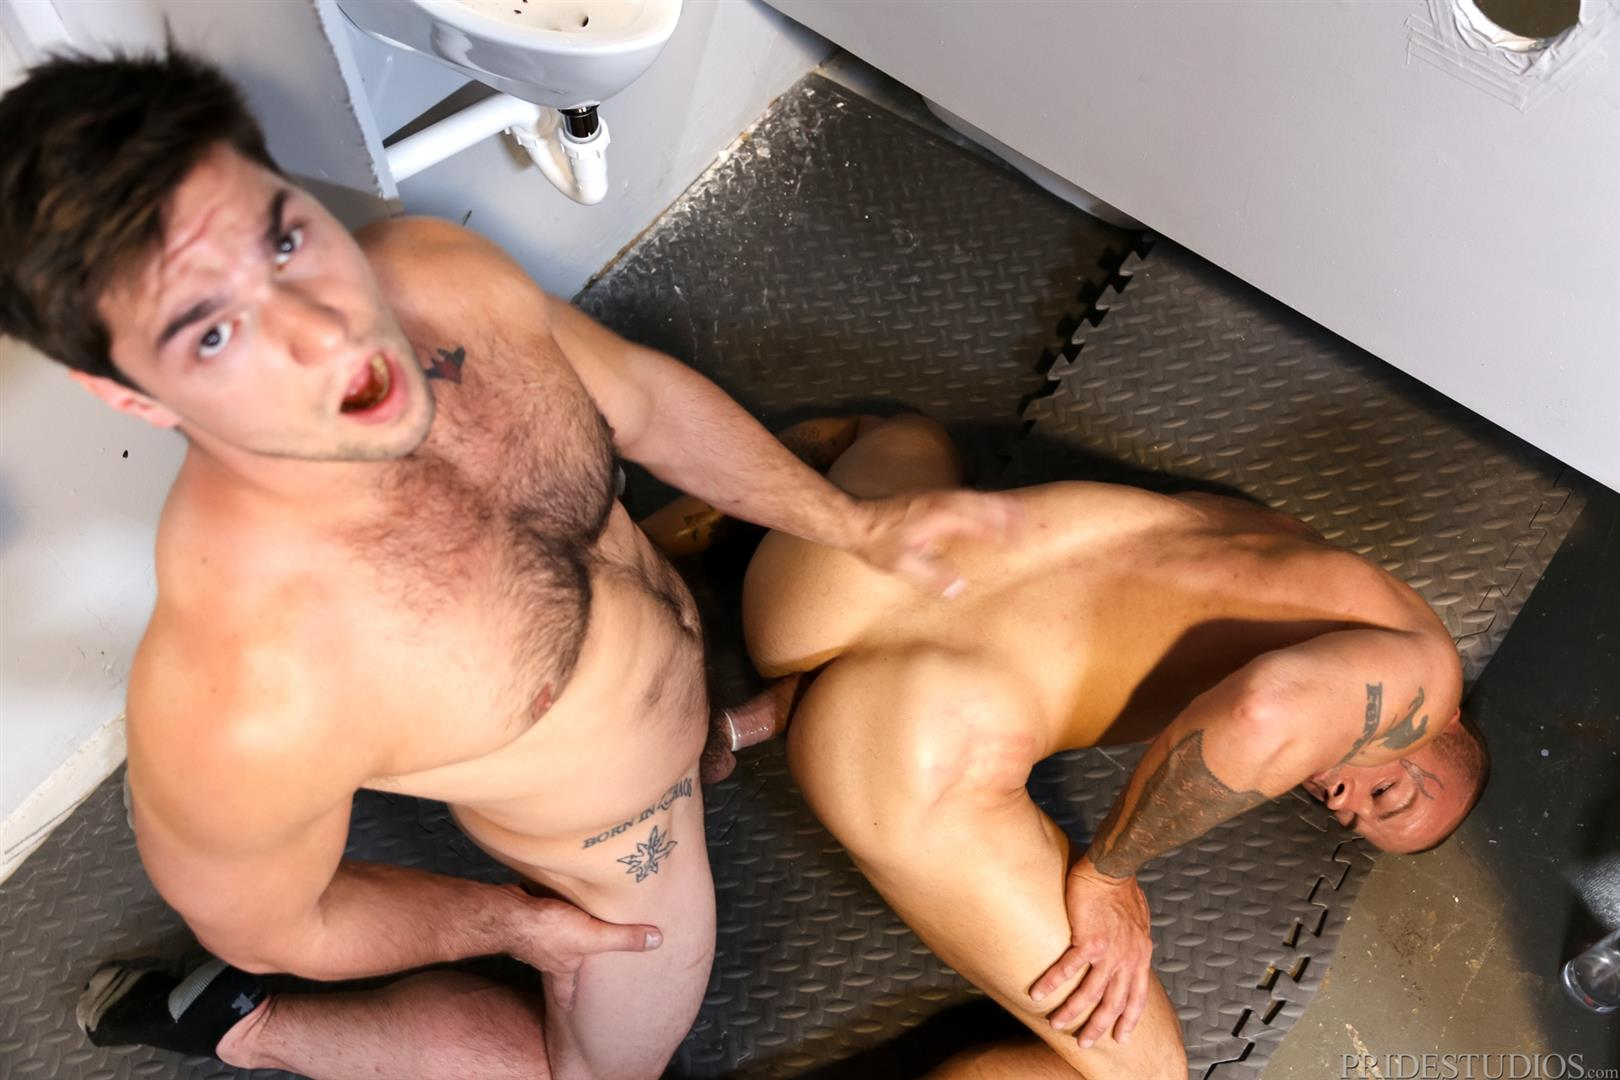 Extra Big Dicks Sean Duran Fucking Through A Glory Hole Amateur Gay Porn 14 Getting Fucked By A Big Fat Cock Through a Glory Hole